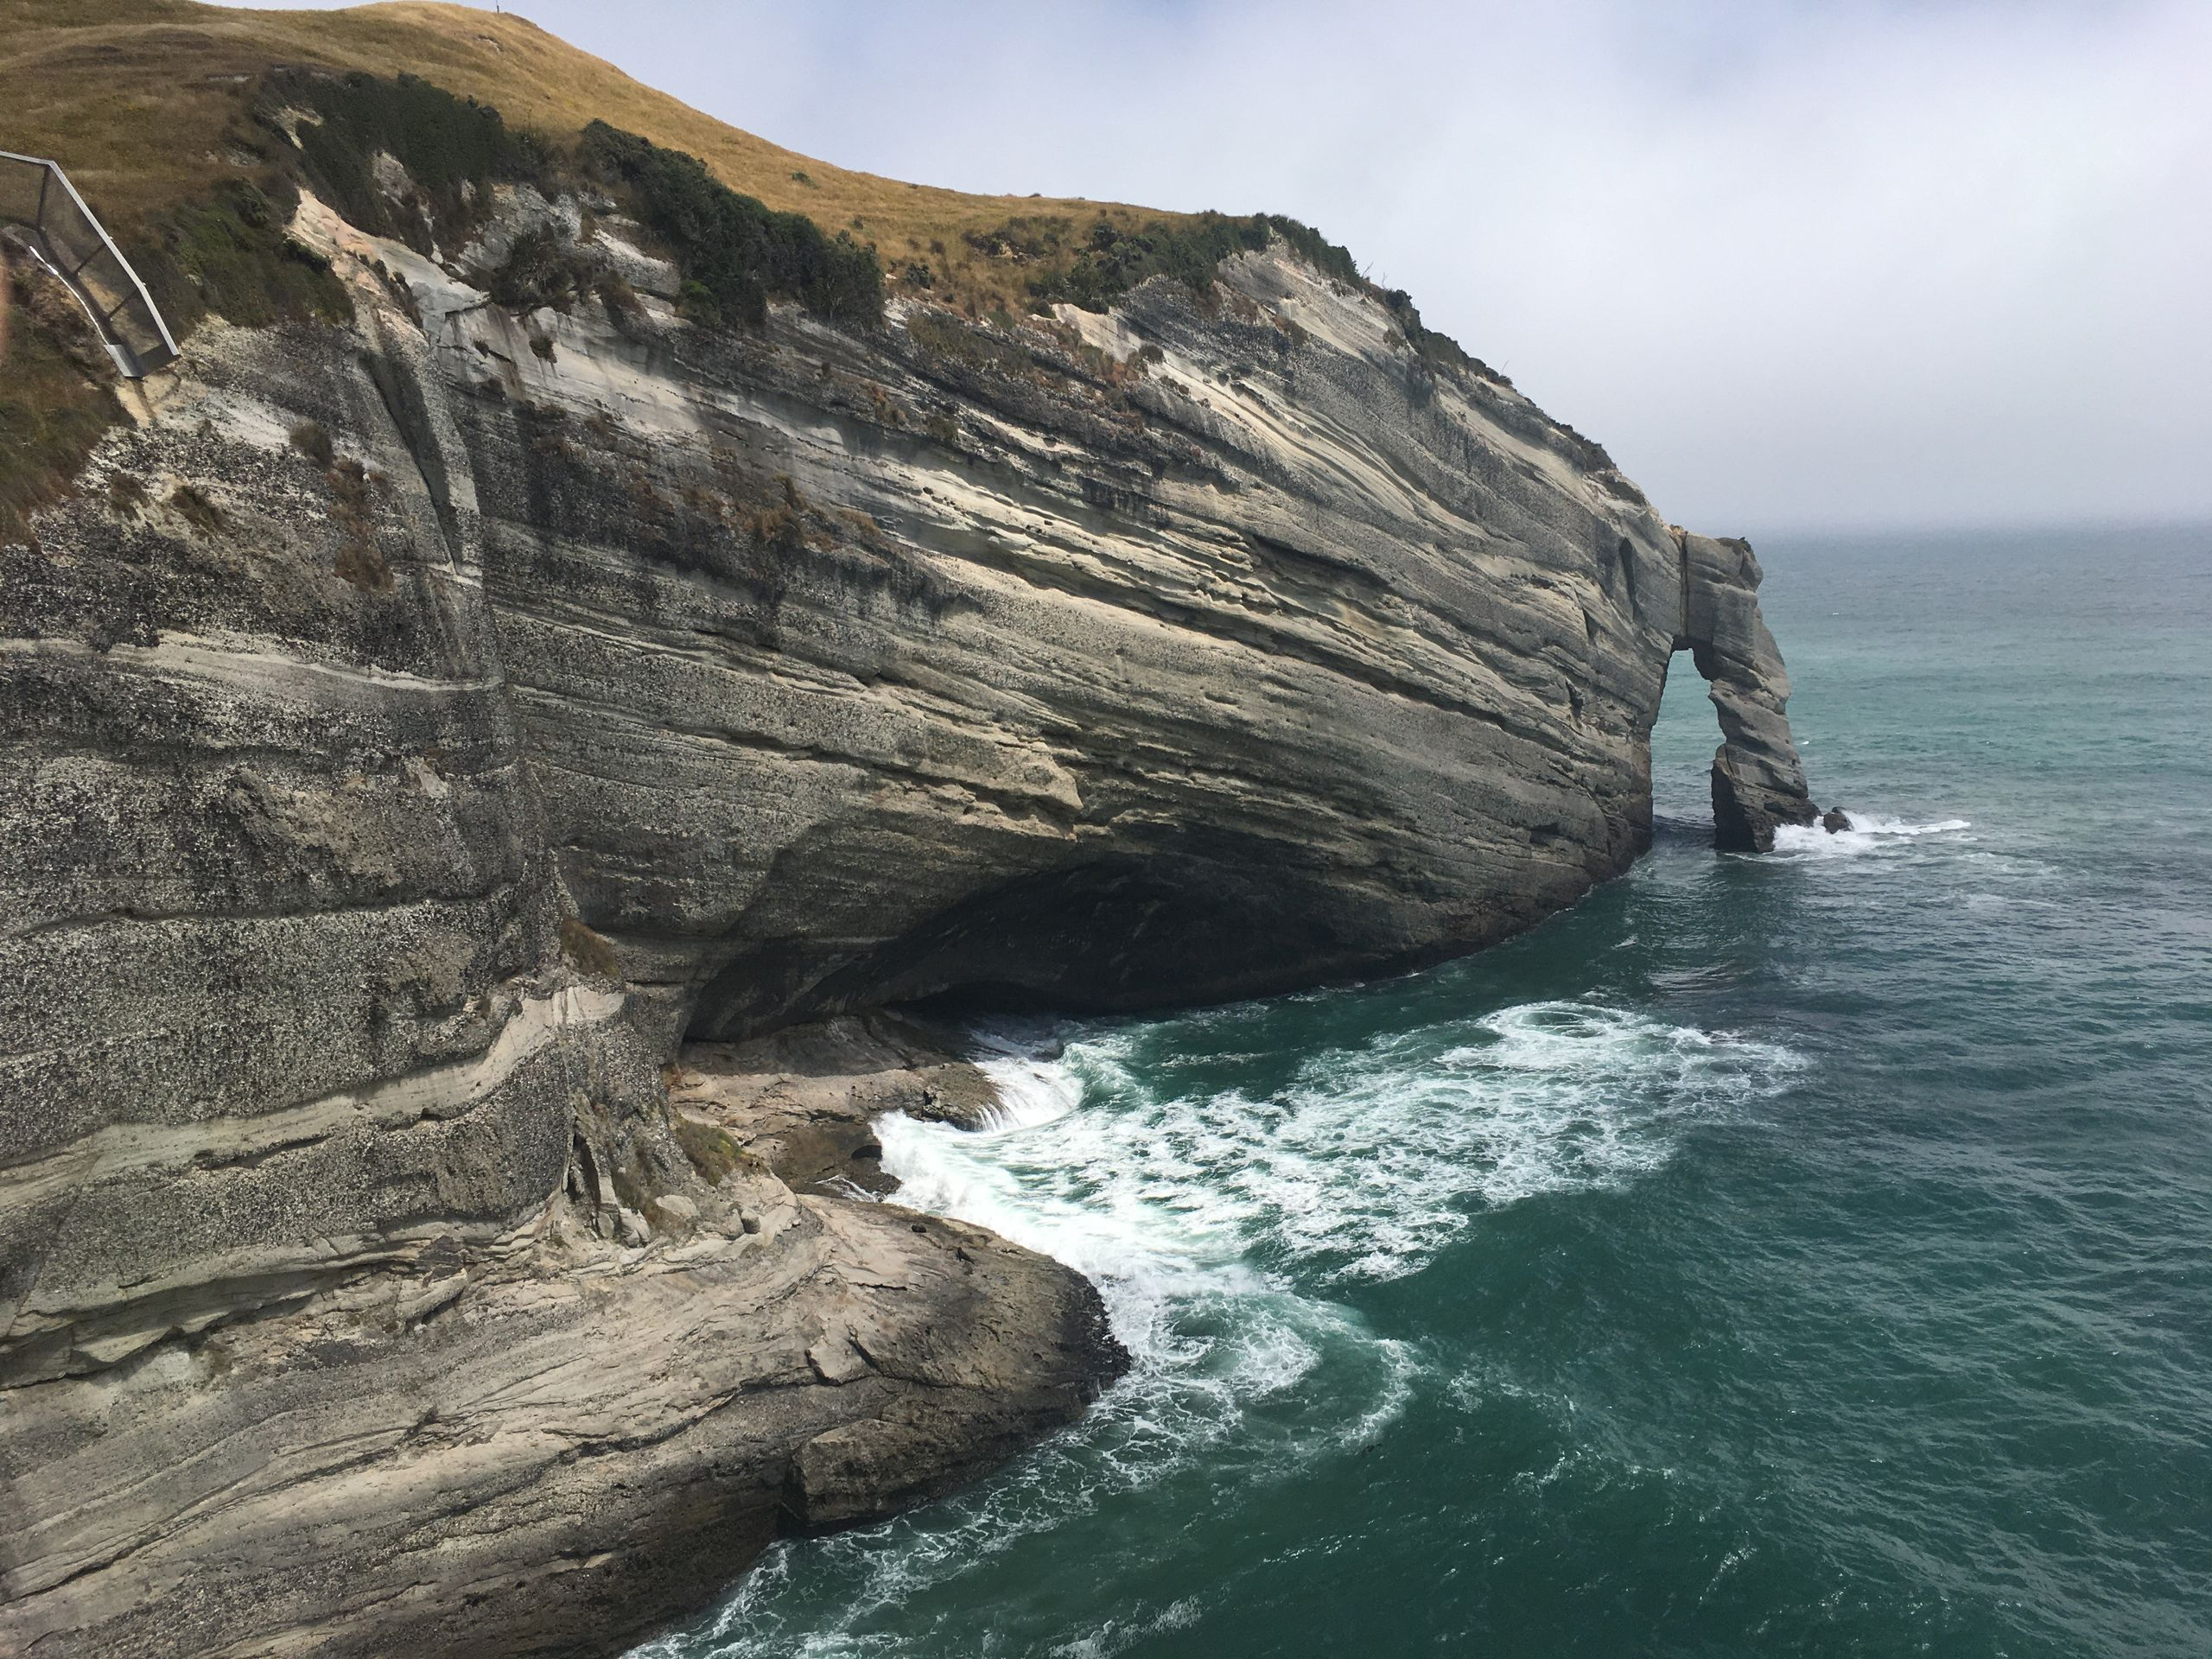 Cape Farewell Spit